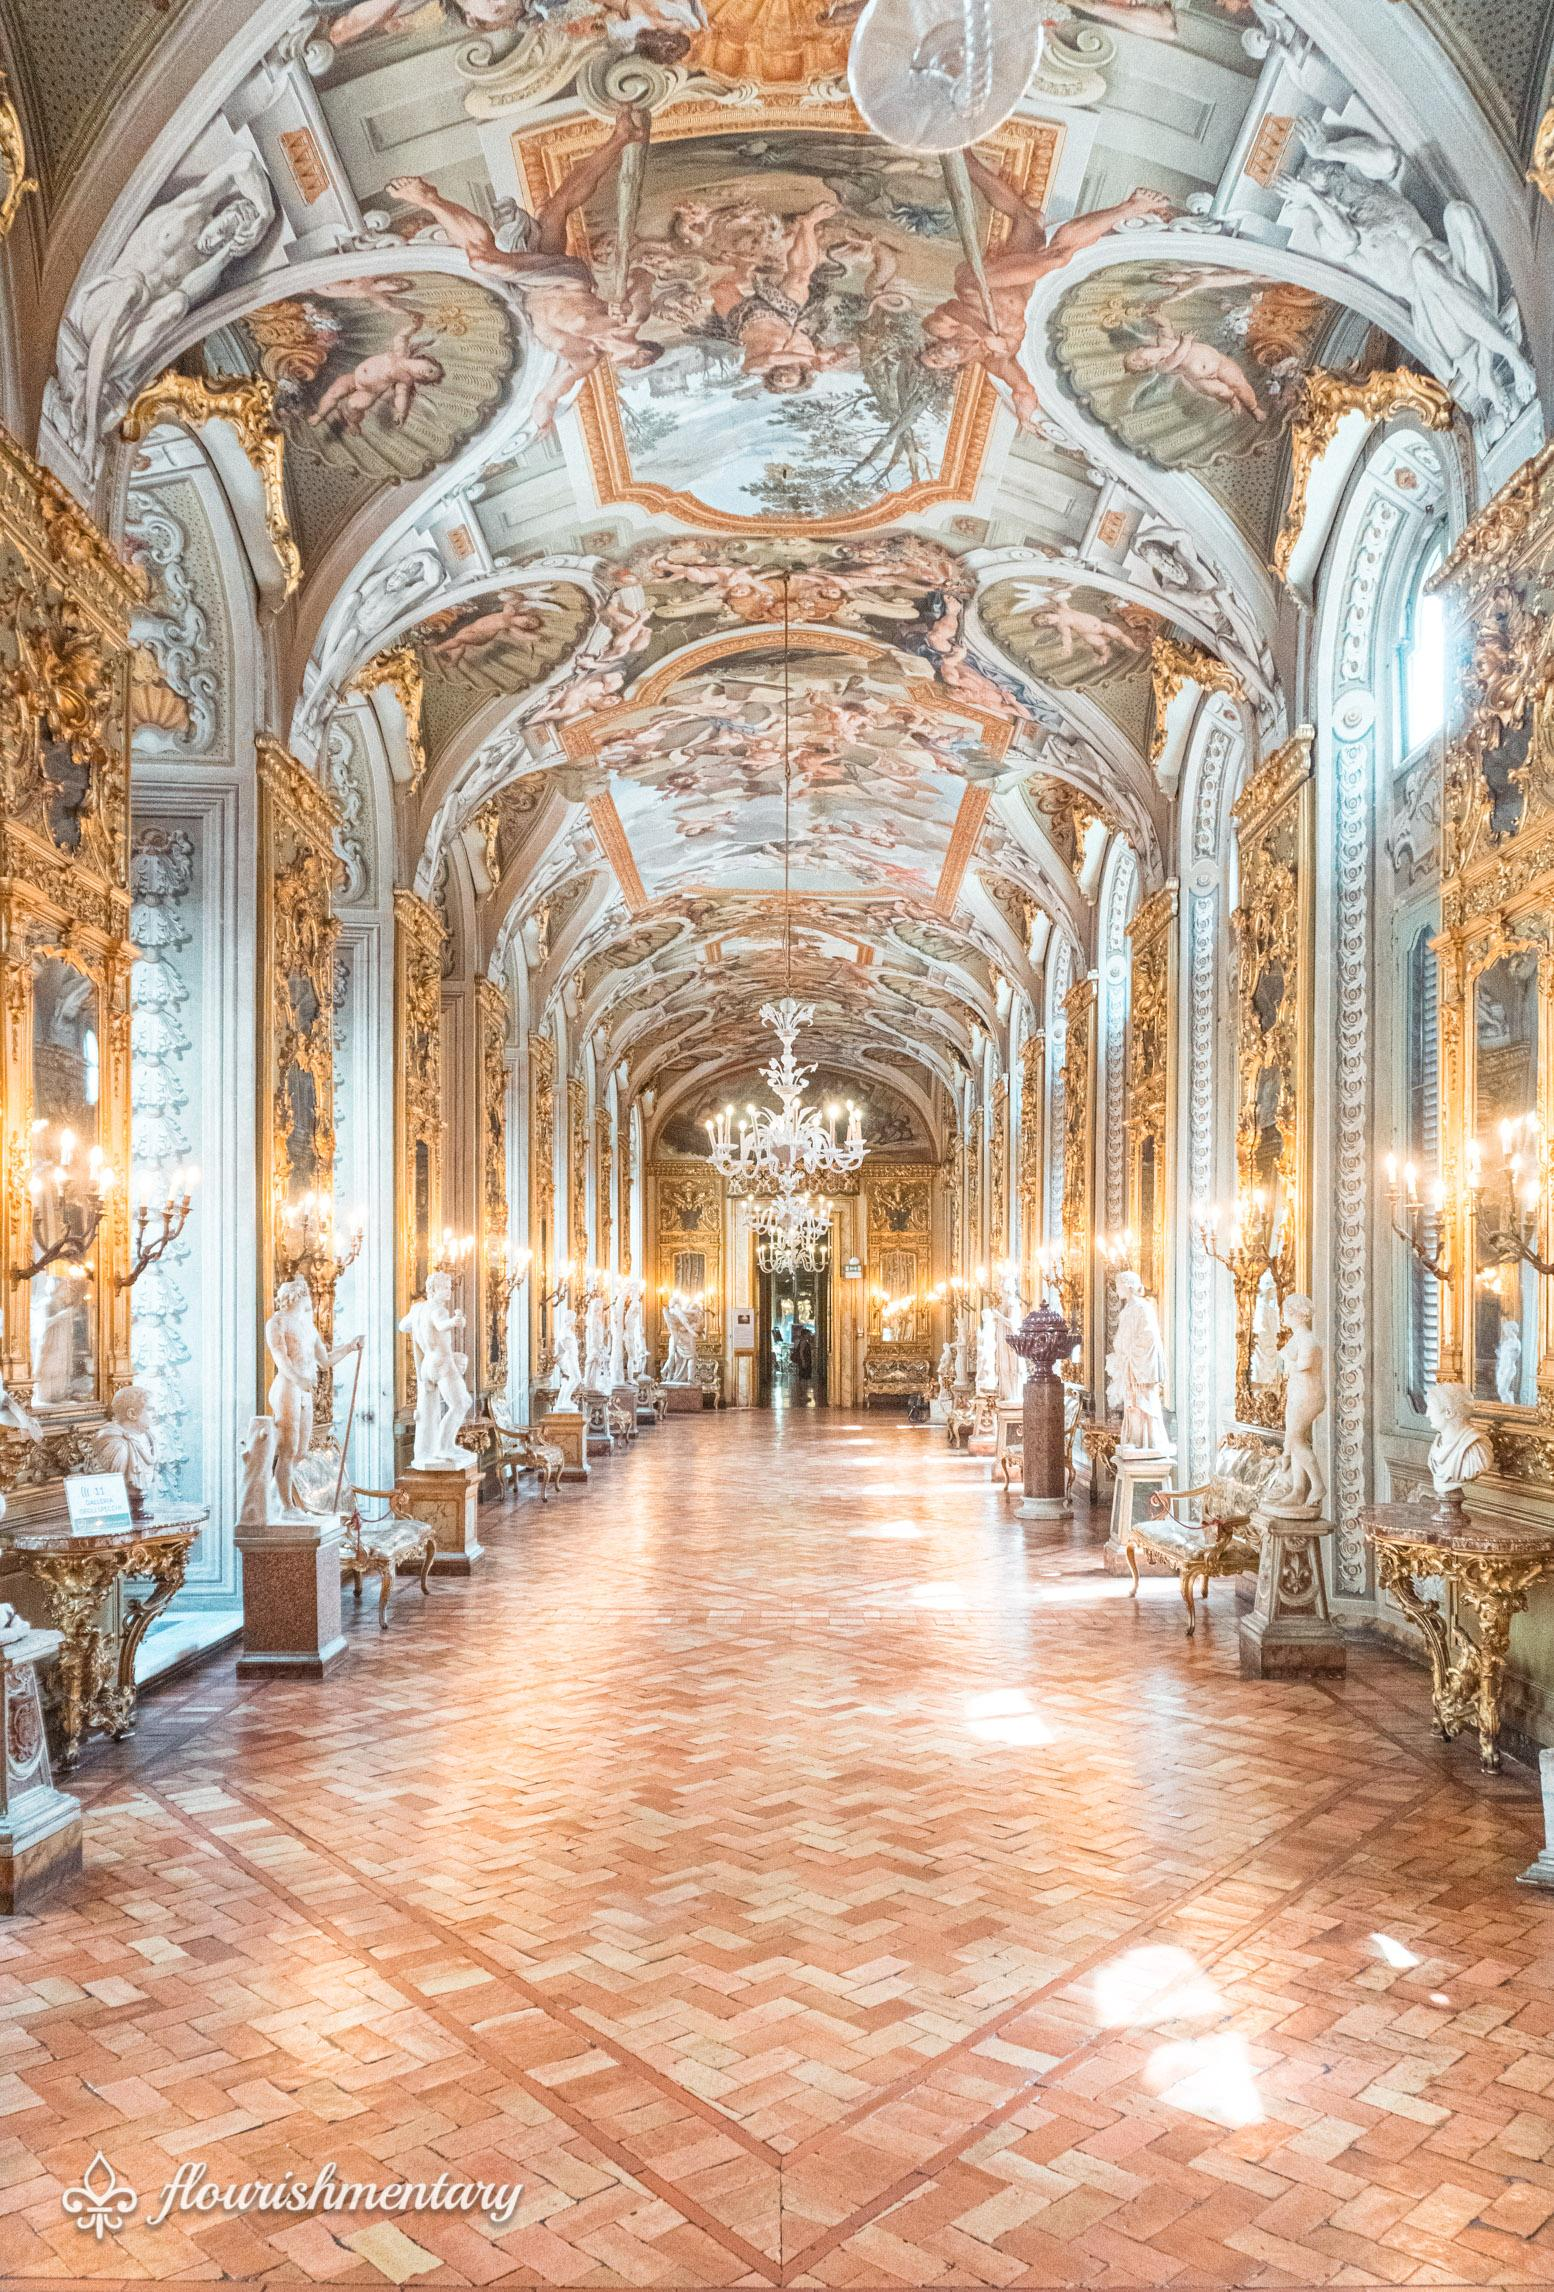 Galleria Doria Pamphilj hall of mirrors